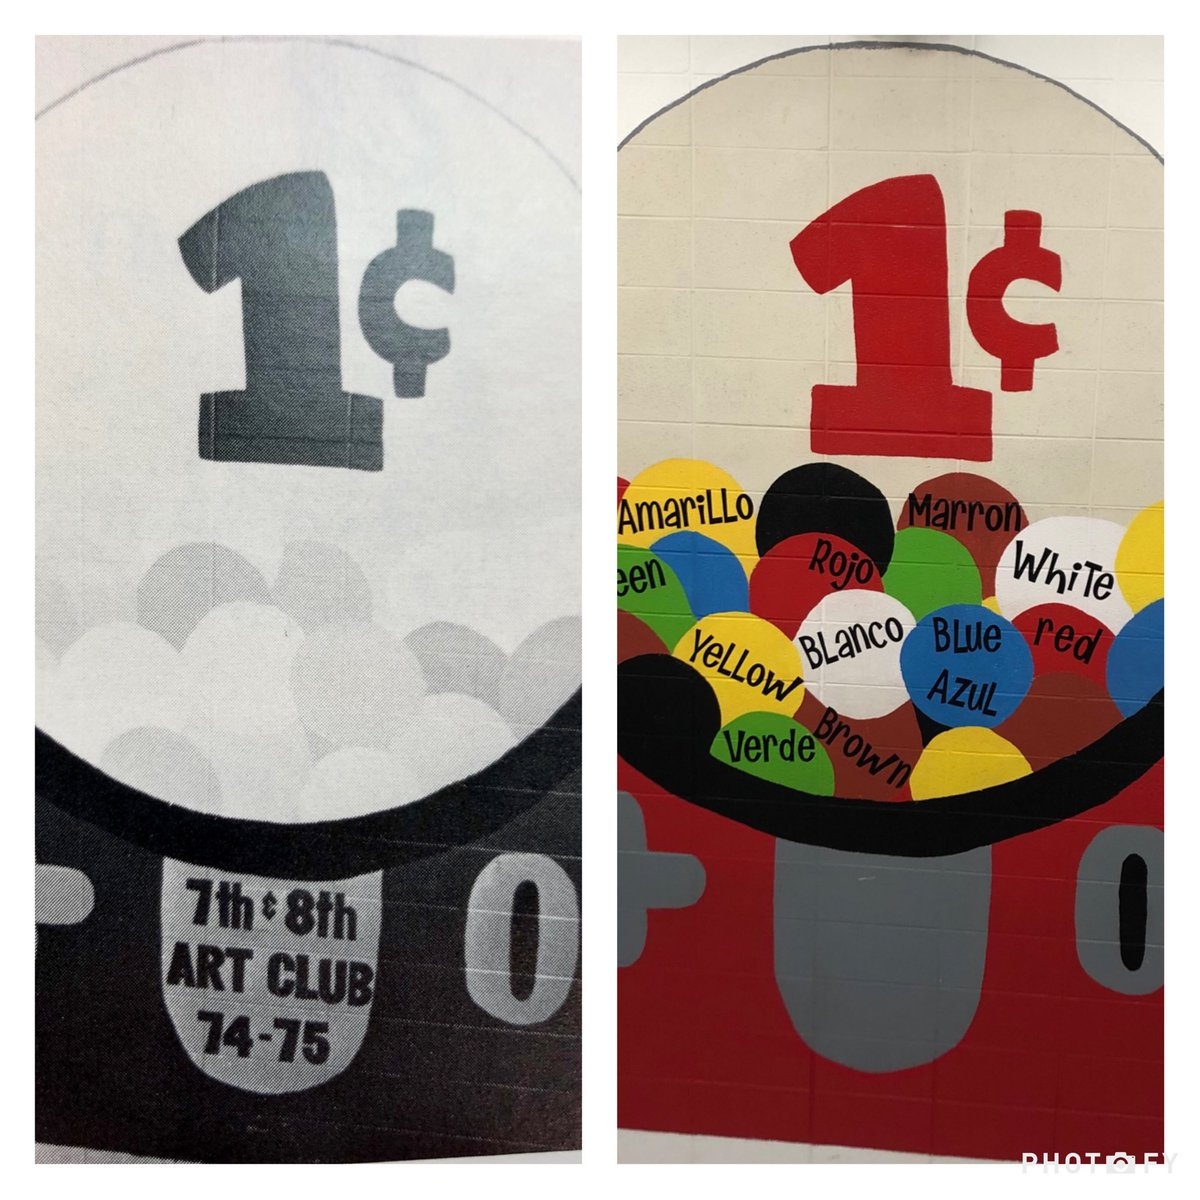 test Twitter Media - Did you know the gumball machine mural was first painted by the 1974 Art Club? #d30learns https://t.co/Cv5ntJeHnR